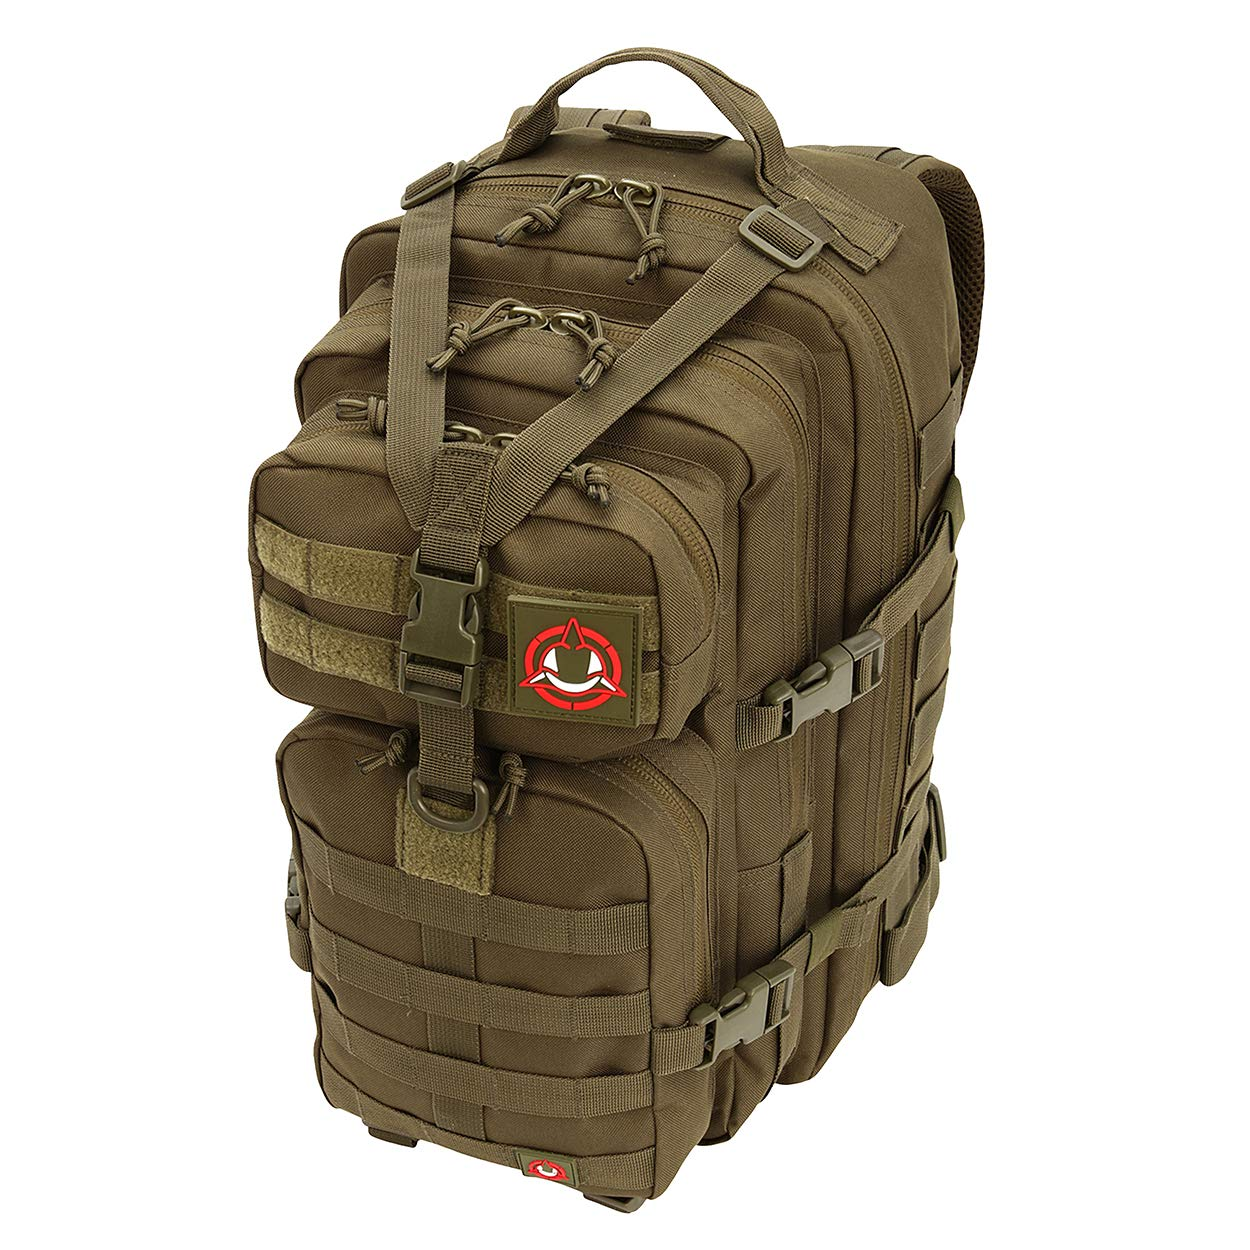 Orca Tactical Salish 34l MOLLE 1 – 2 Day Army MilitaryサバイバルバックパックバグアウトバッグリュックサックAssault Pack B07DKWKZZ6 グリーン(OD green)